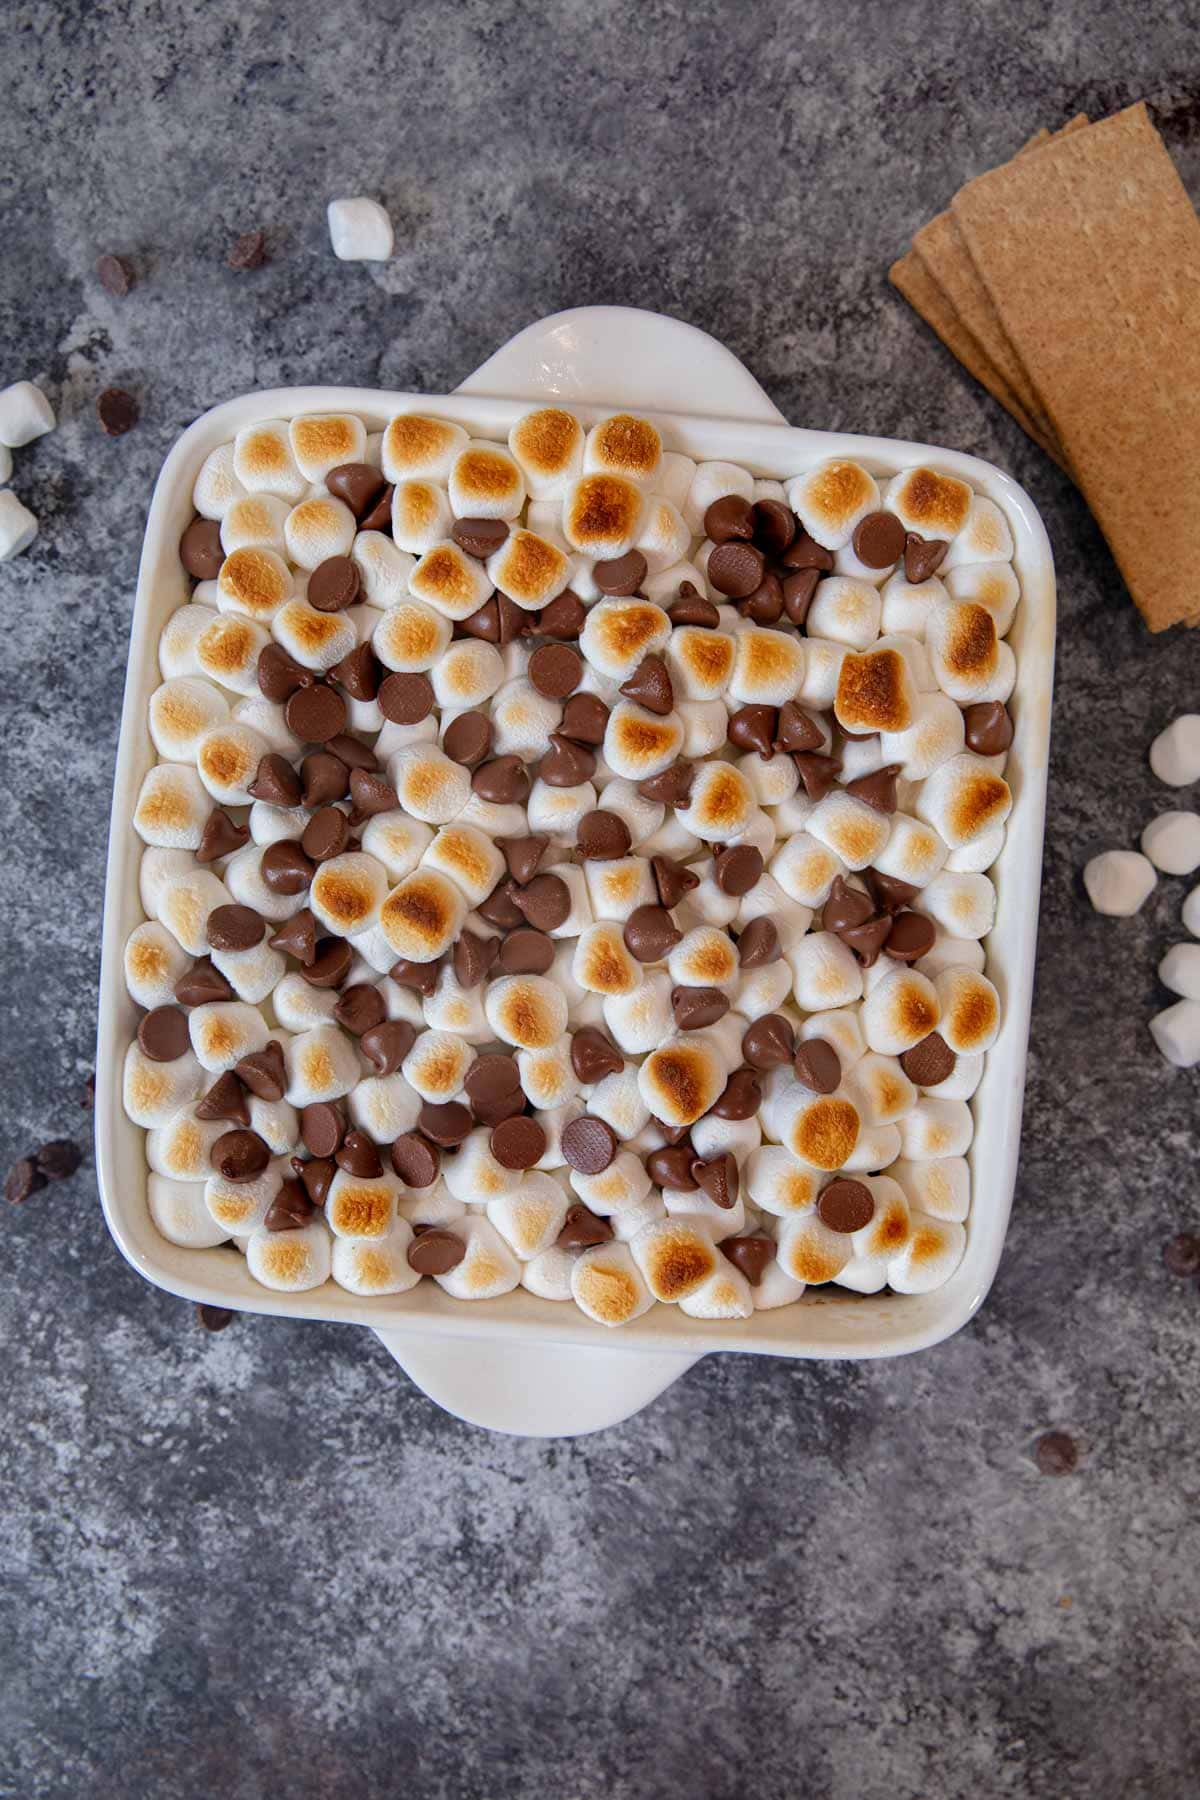 S'mores Brownies with toasted marshmallows and chocolate chips